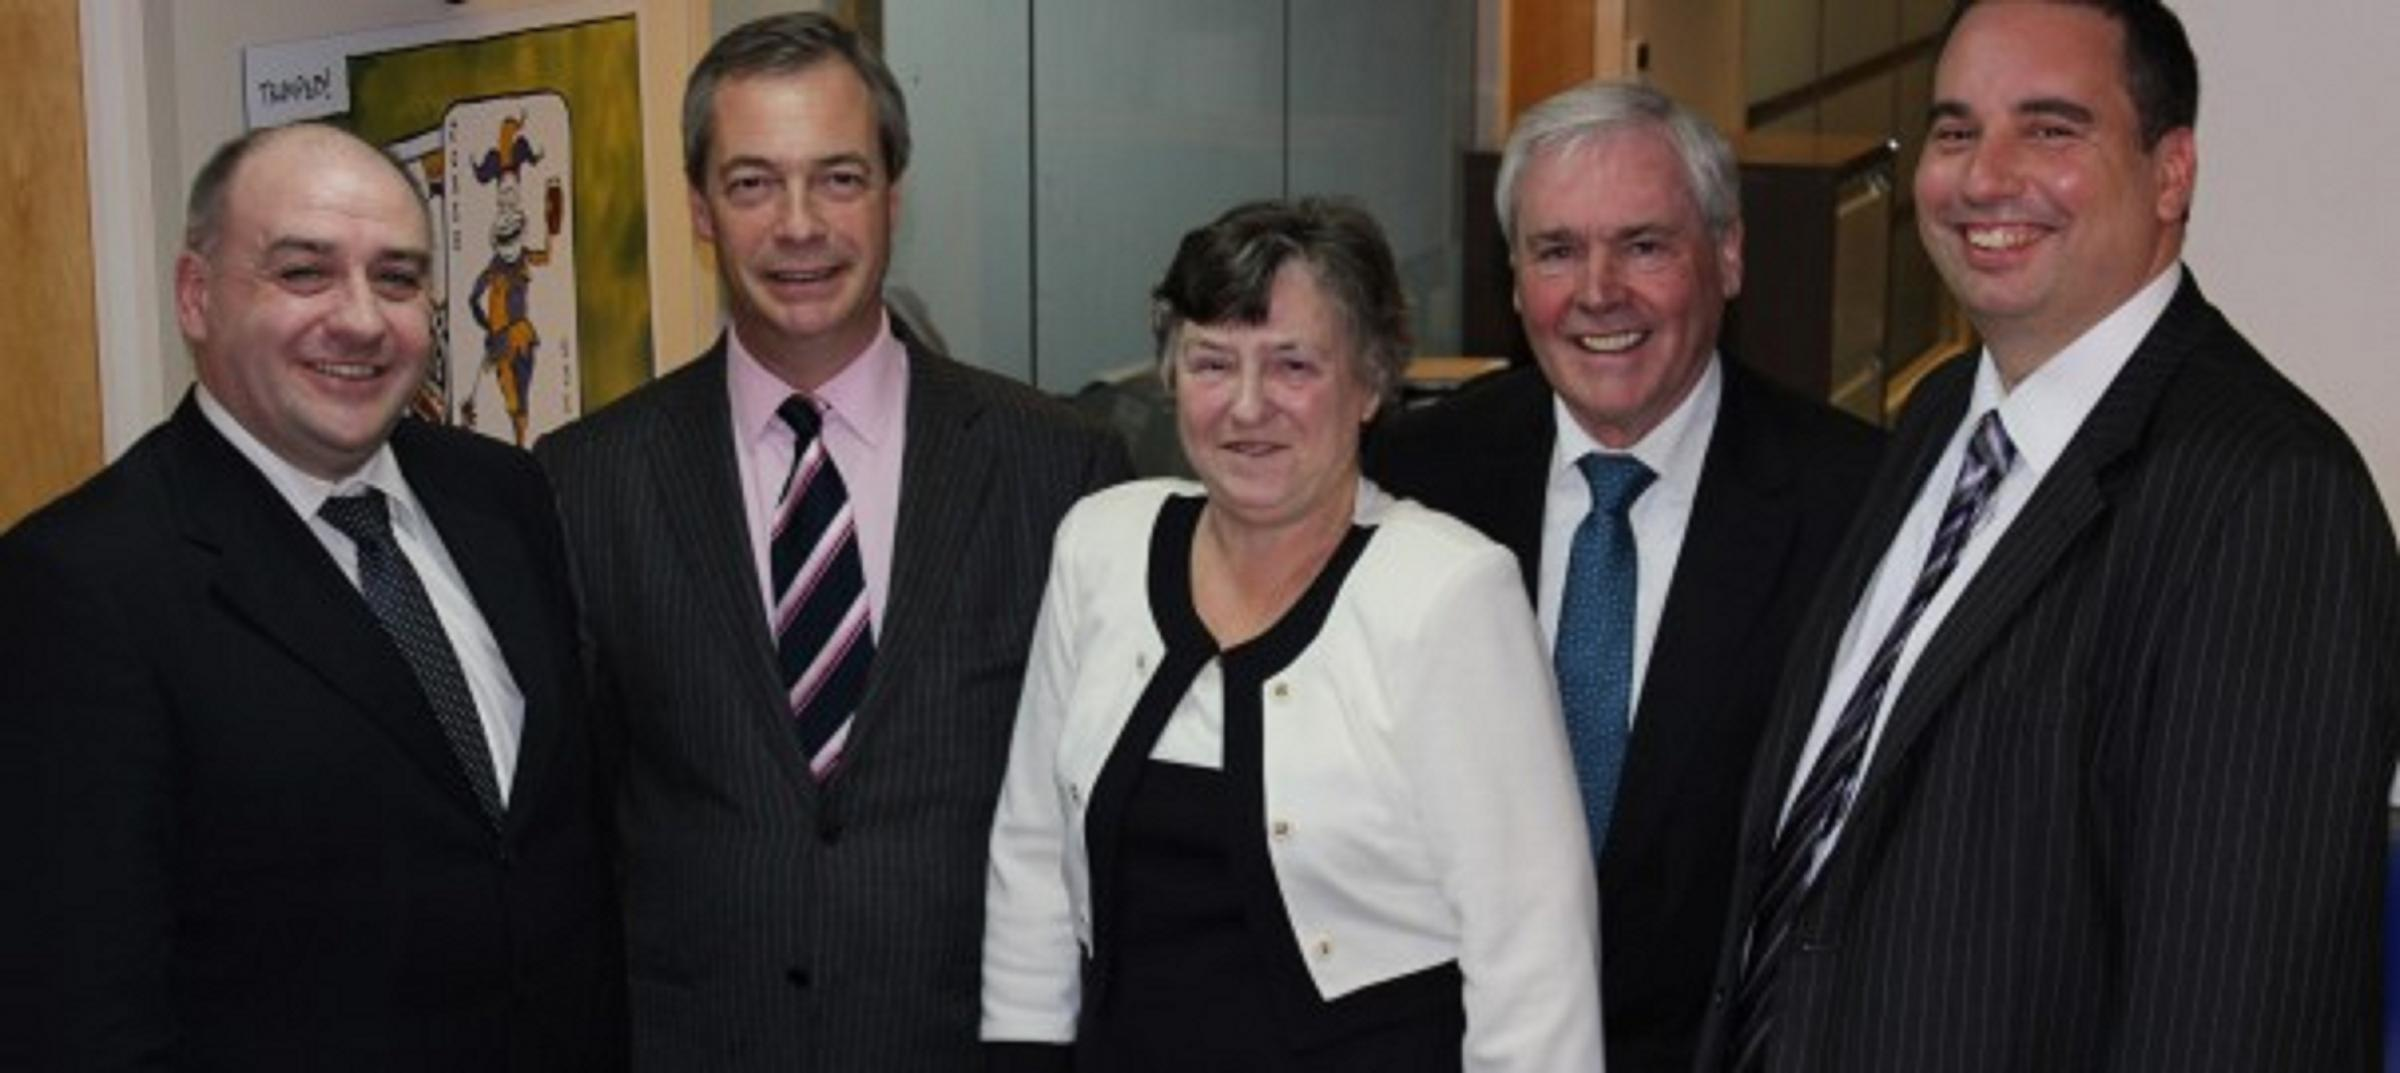 Adrian Turner, UKIP leader Nigel Farage, Ken and Hazel Turner and Bill Etheridge